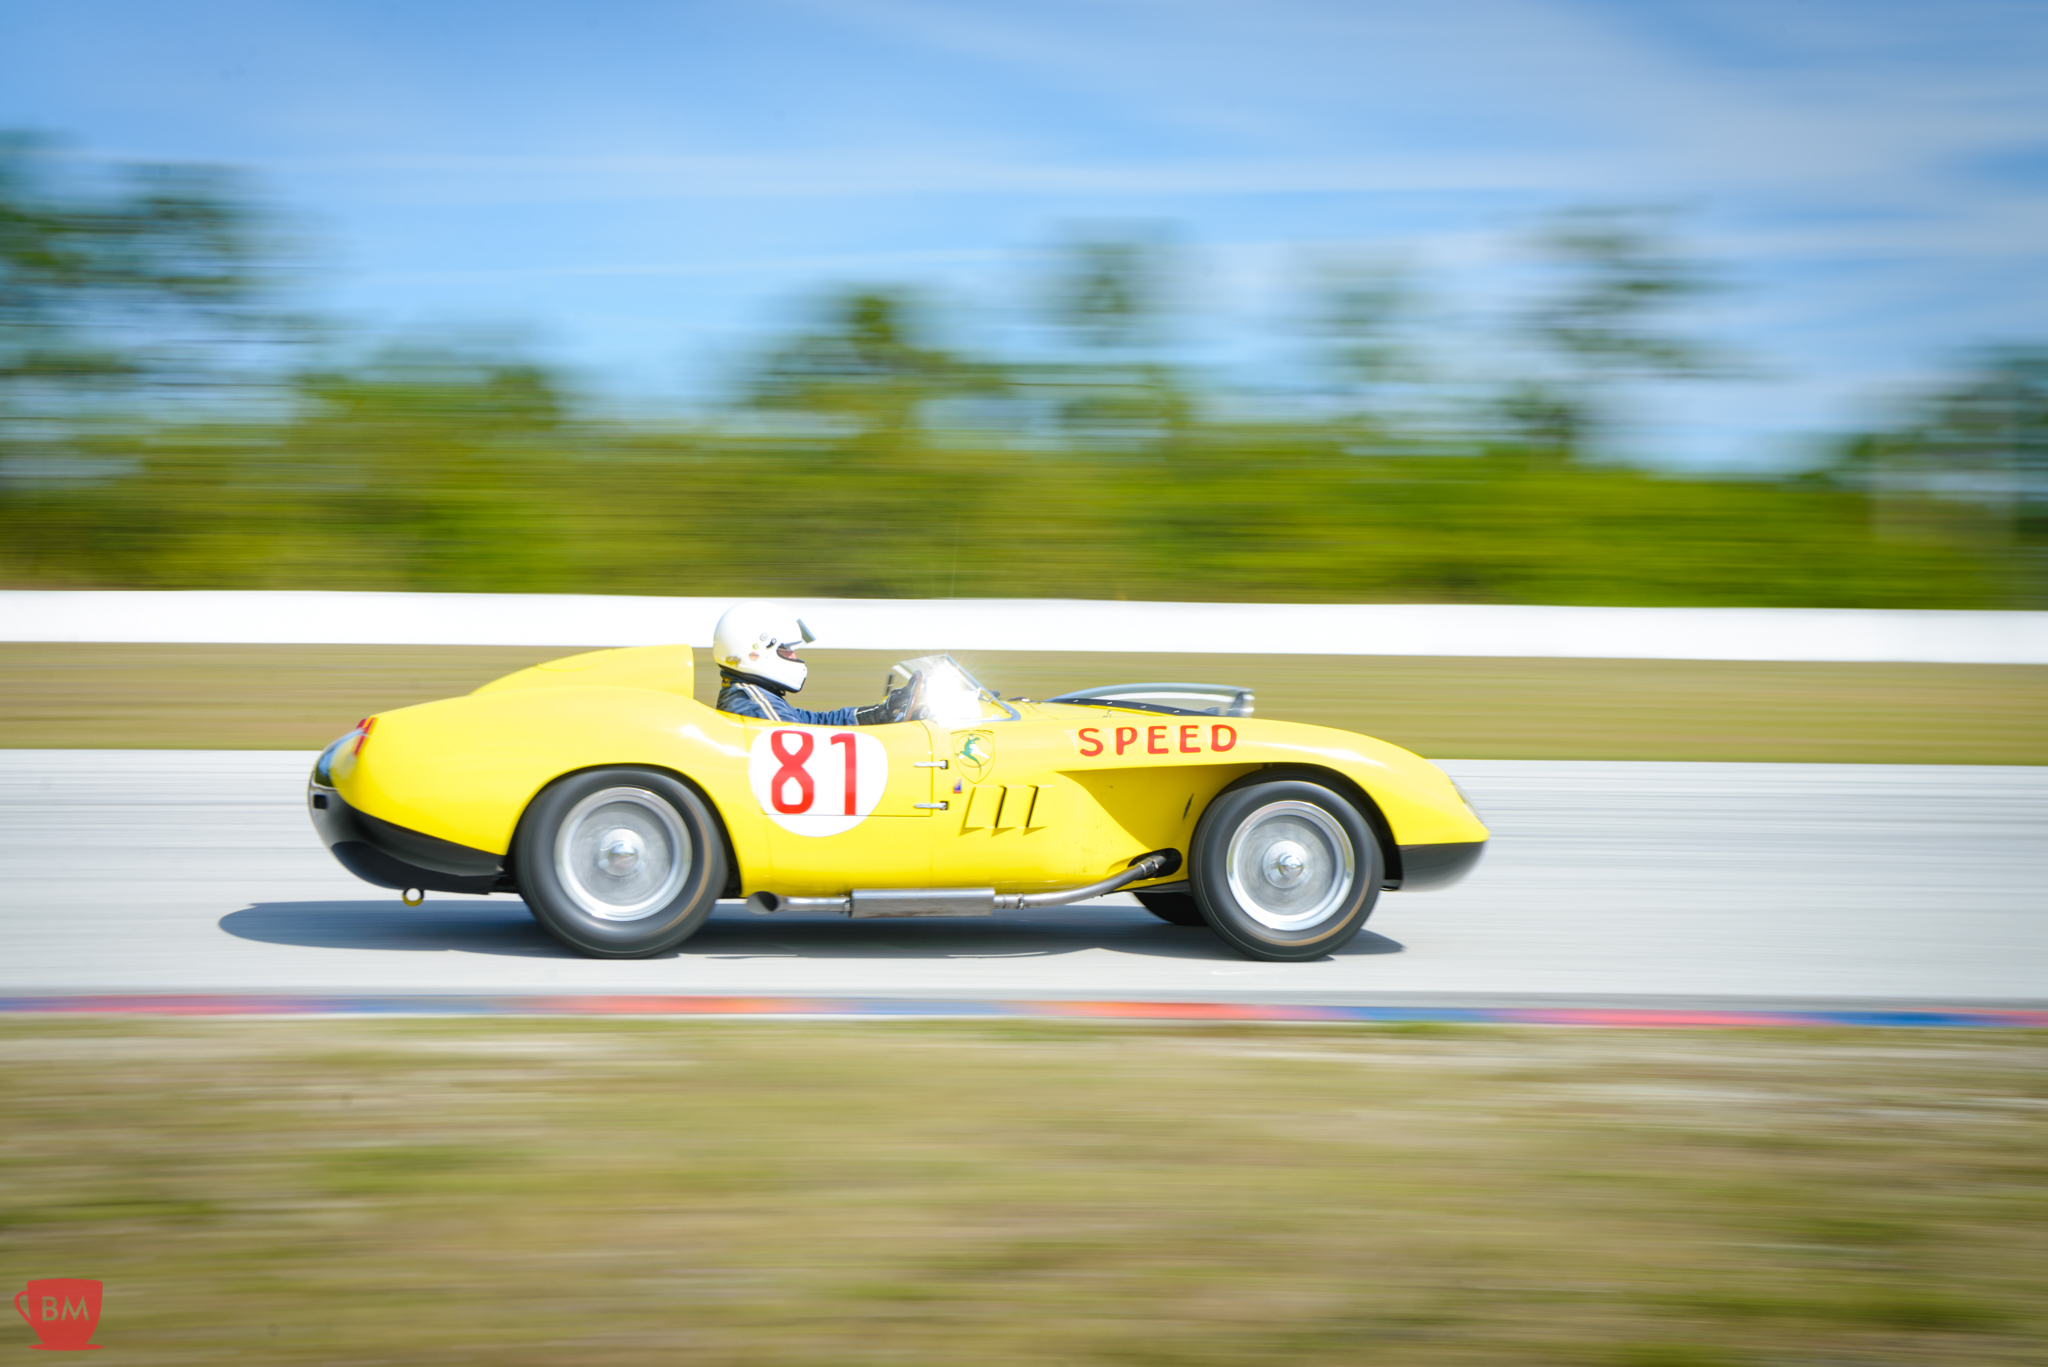 At speed during lapping at Palm Beach International Raceway.